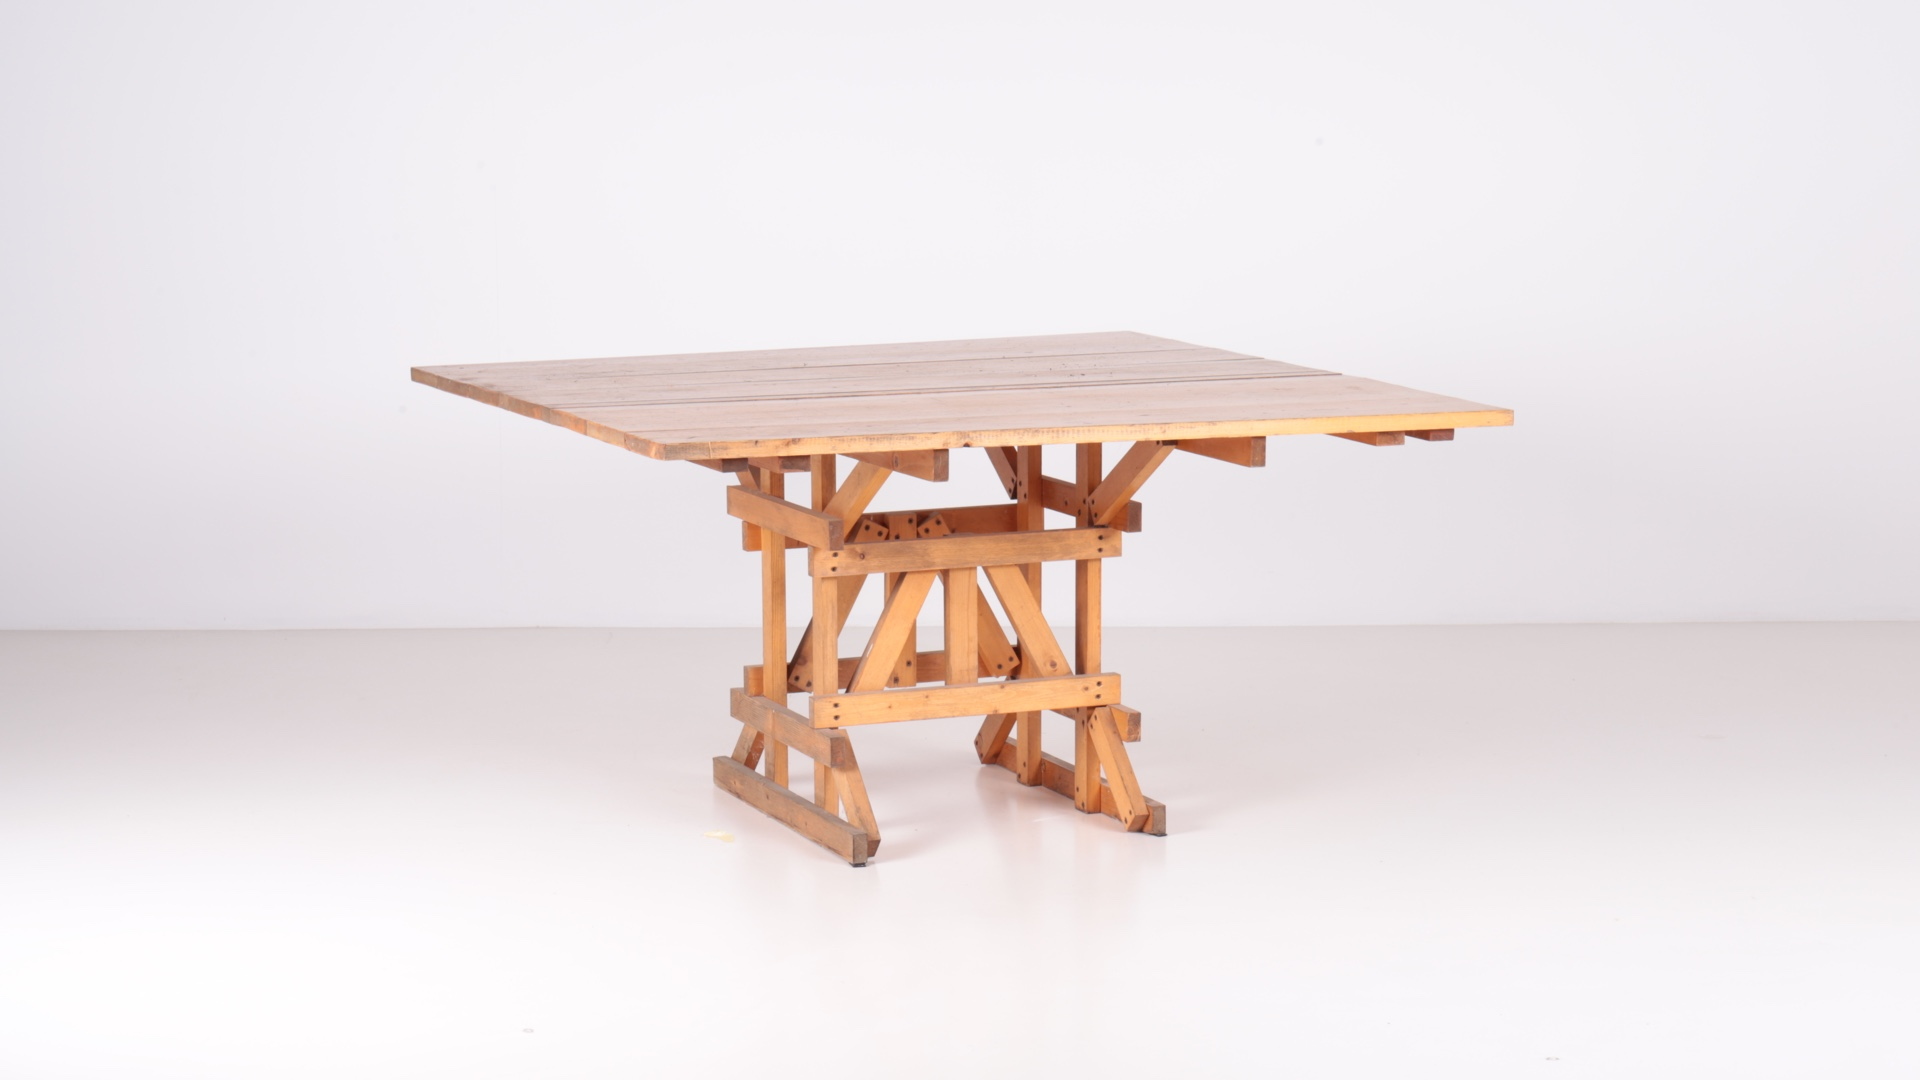 Ics table by Enzo Mari | Paradisoterrestre